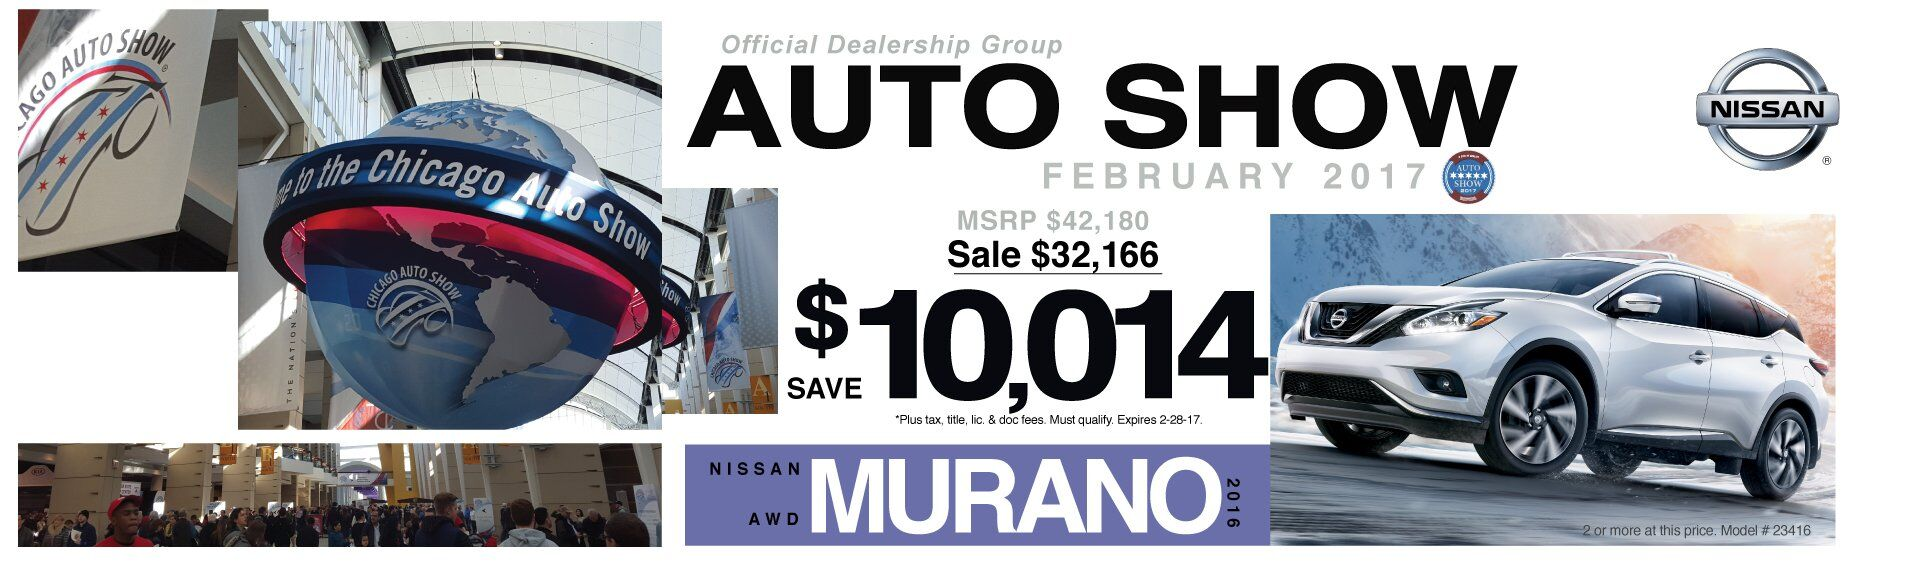 Save $10,014 On A New 2016 Nissan Murano